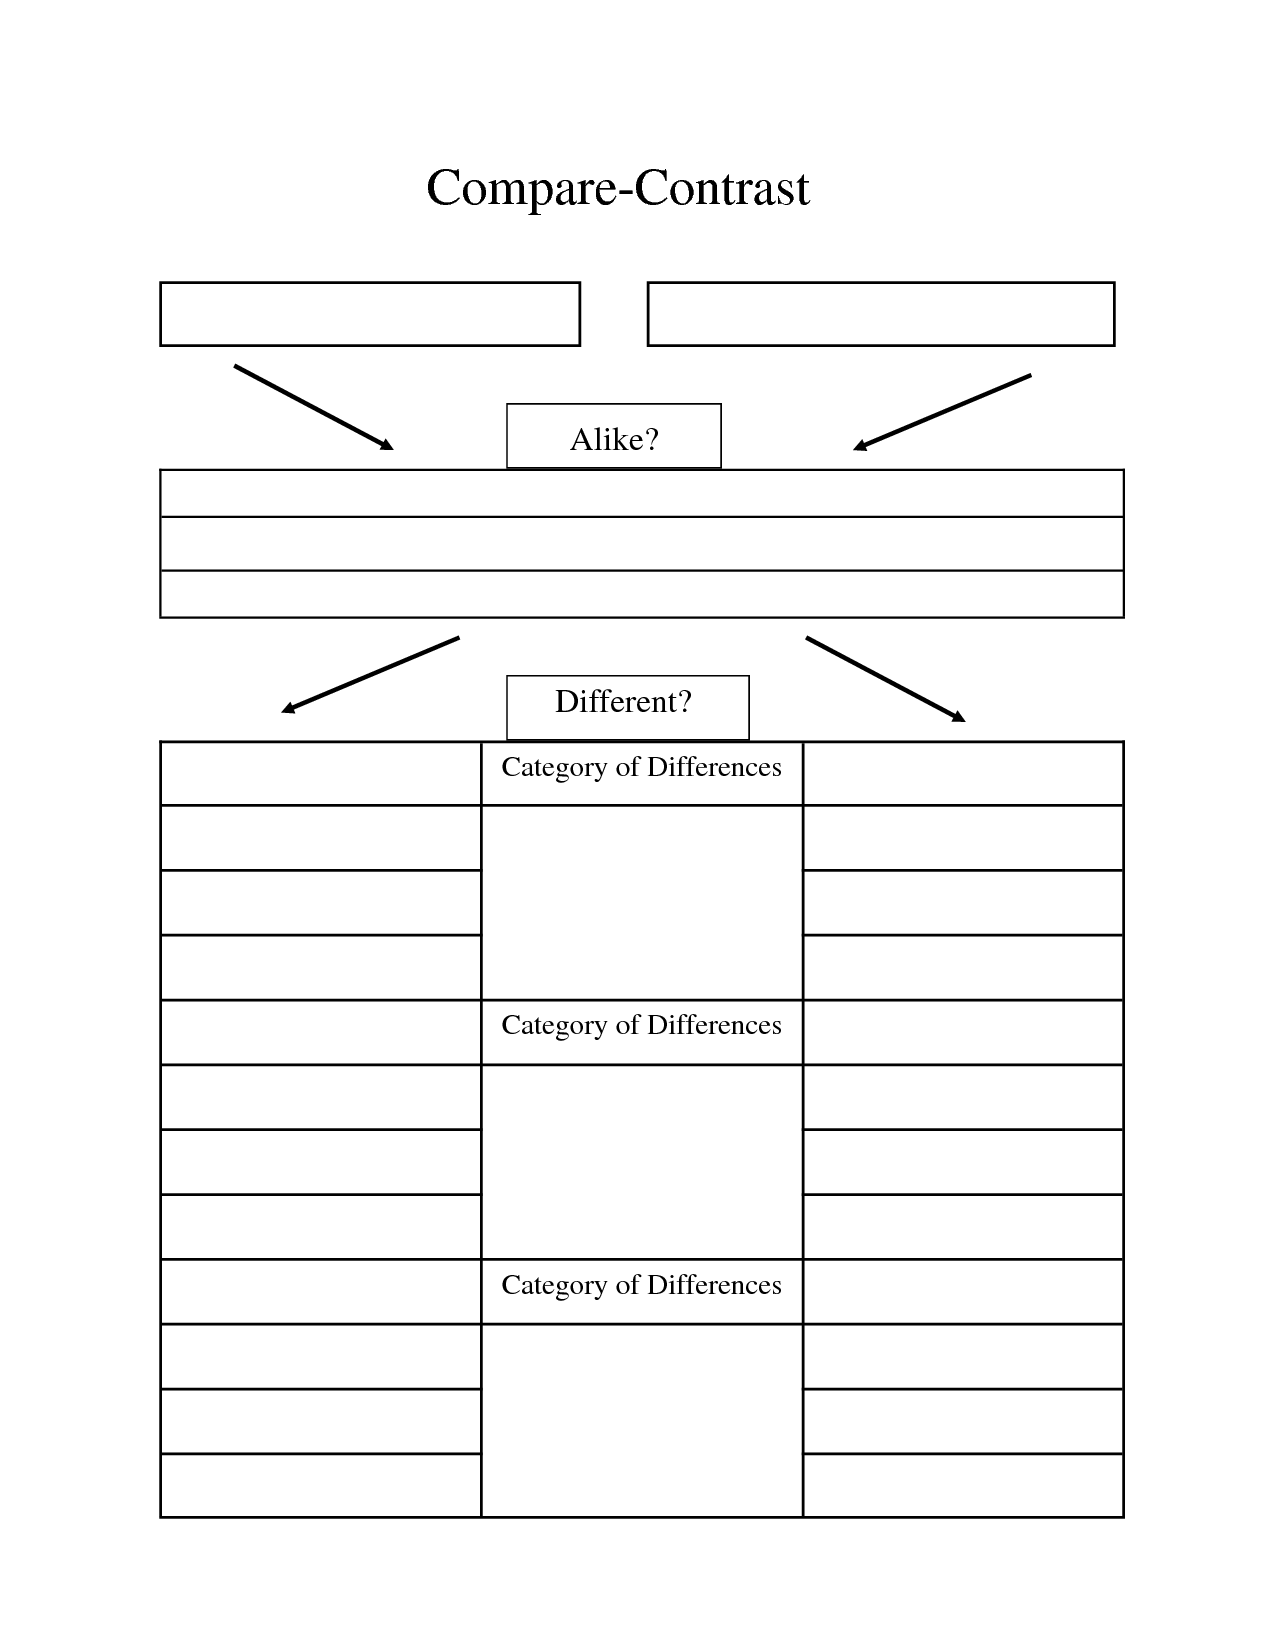 graphic organizer for a compare contrast essay english teacher compare contrast essay graphic organizer compare contrast alike different category of differences category of